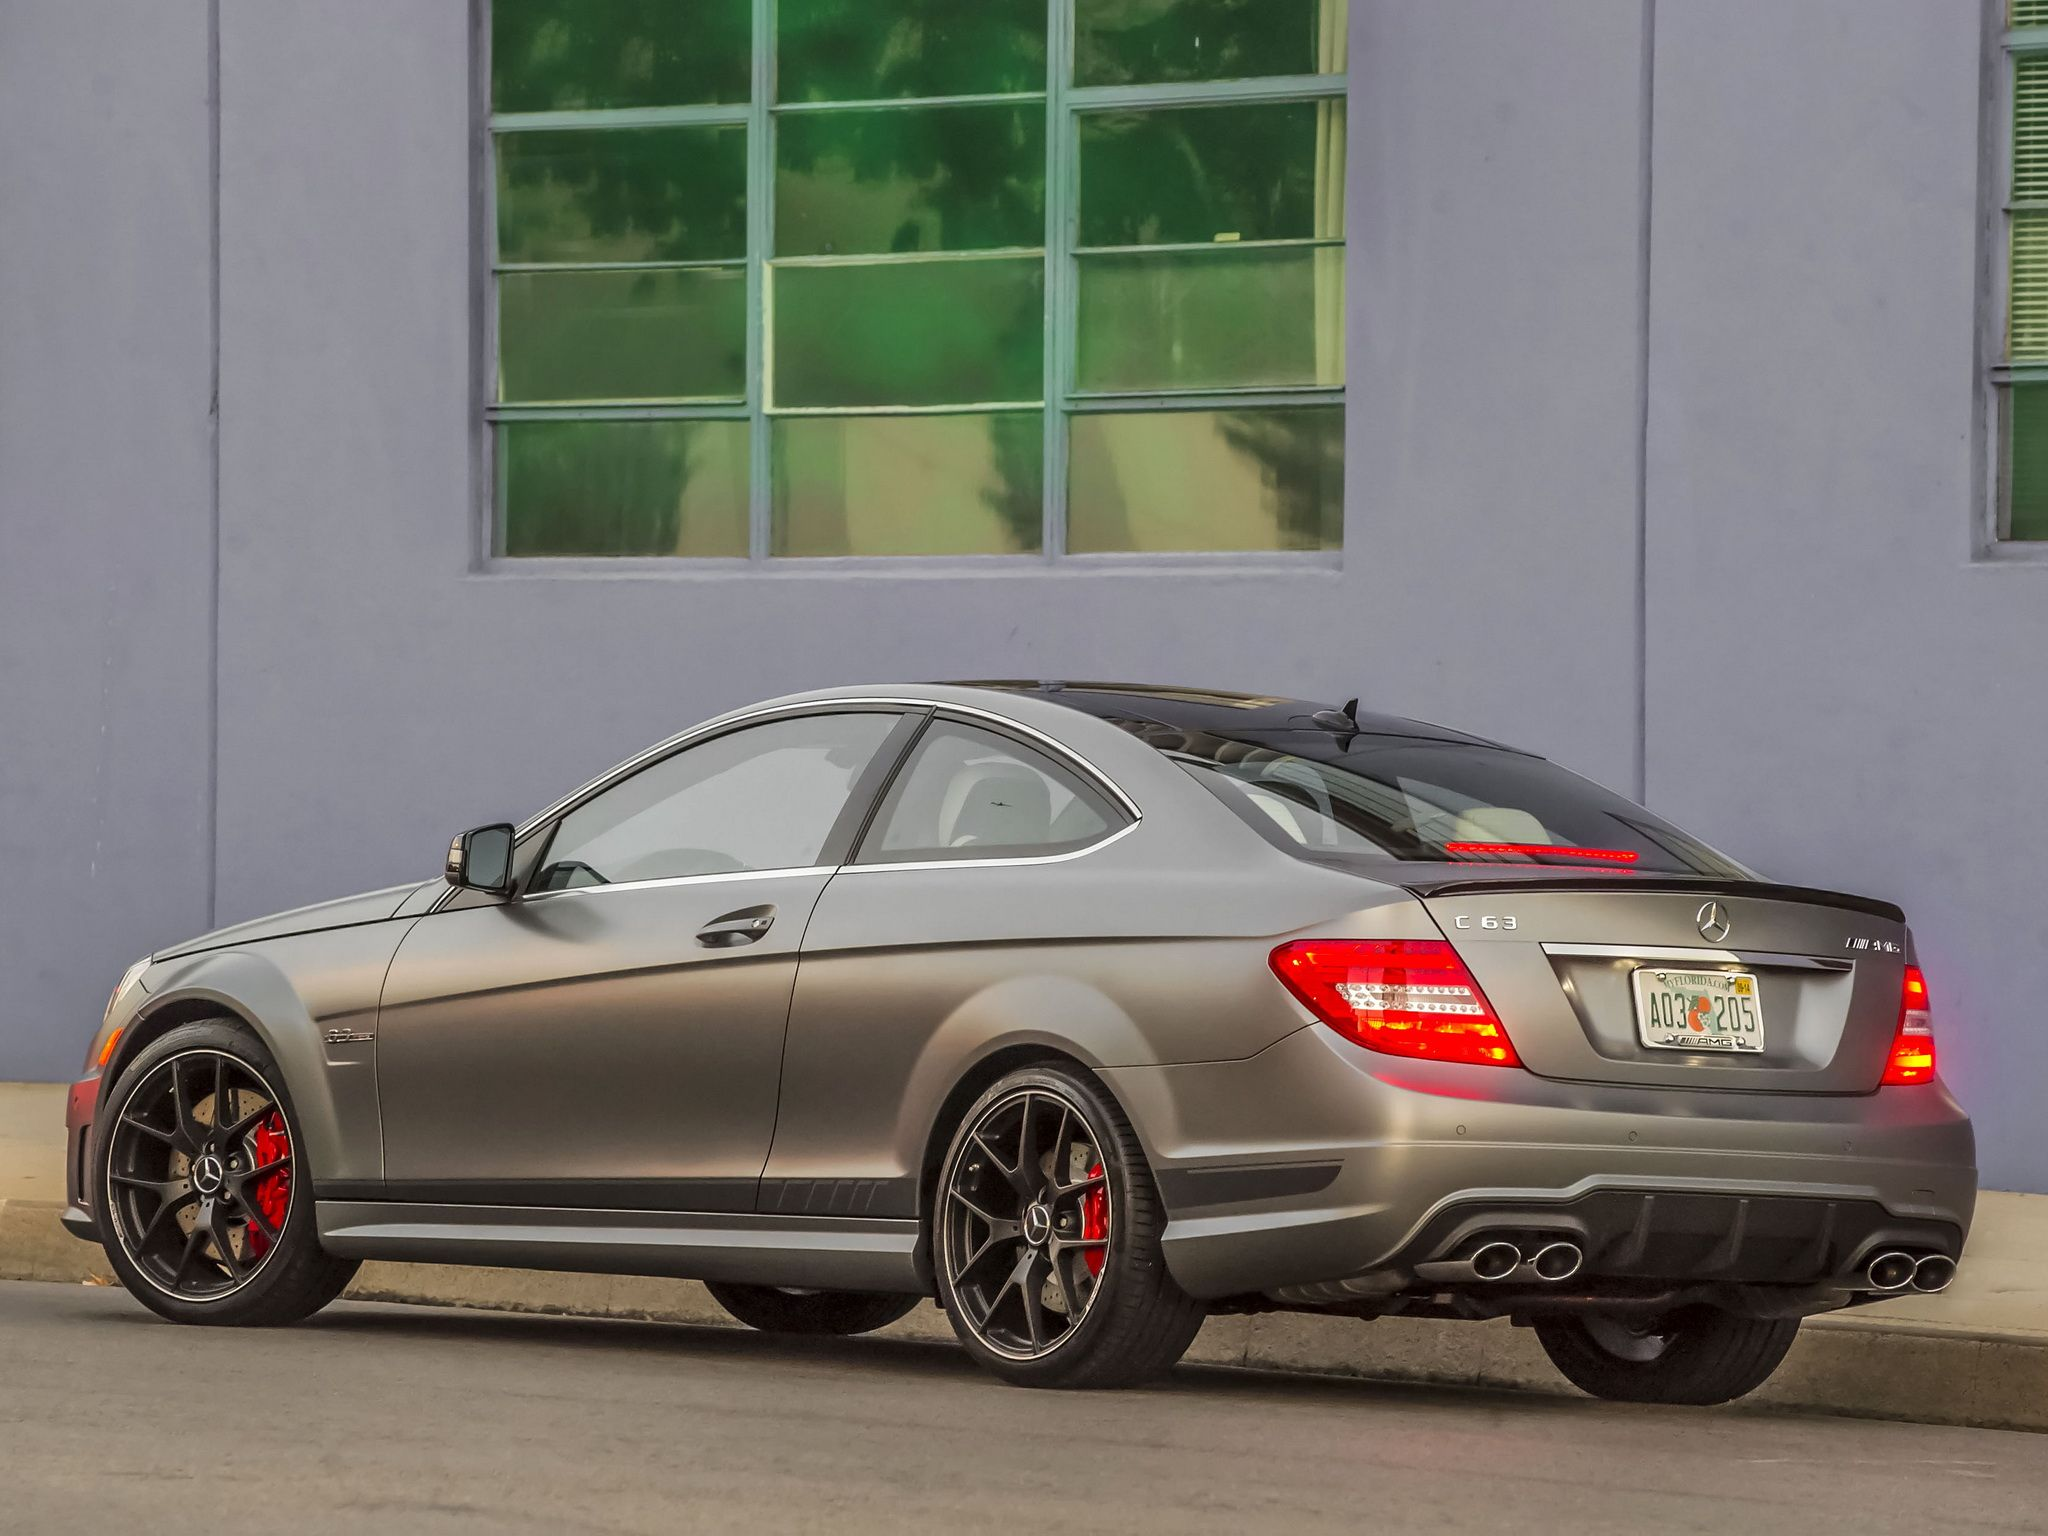 2013 Mercedes Benz C 63 Amg Coupe Edition 507 With Images